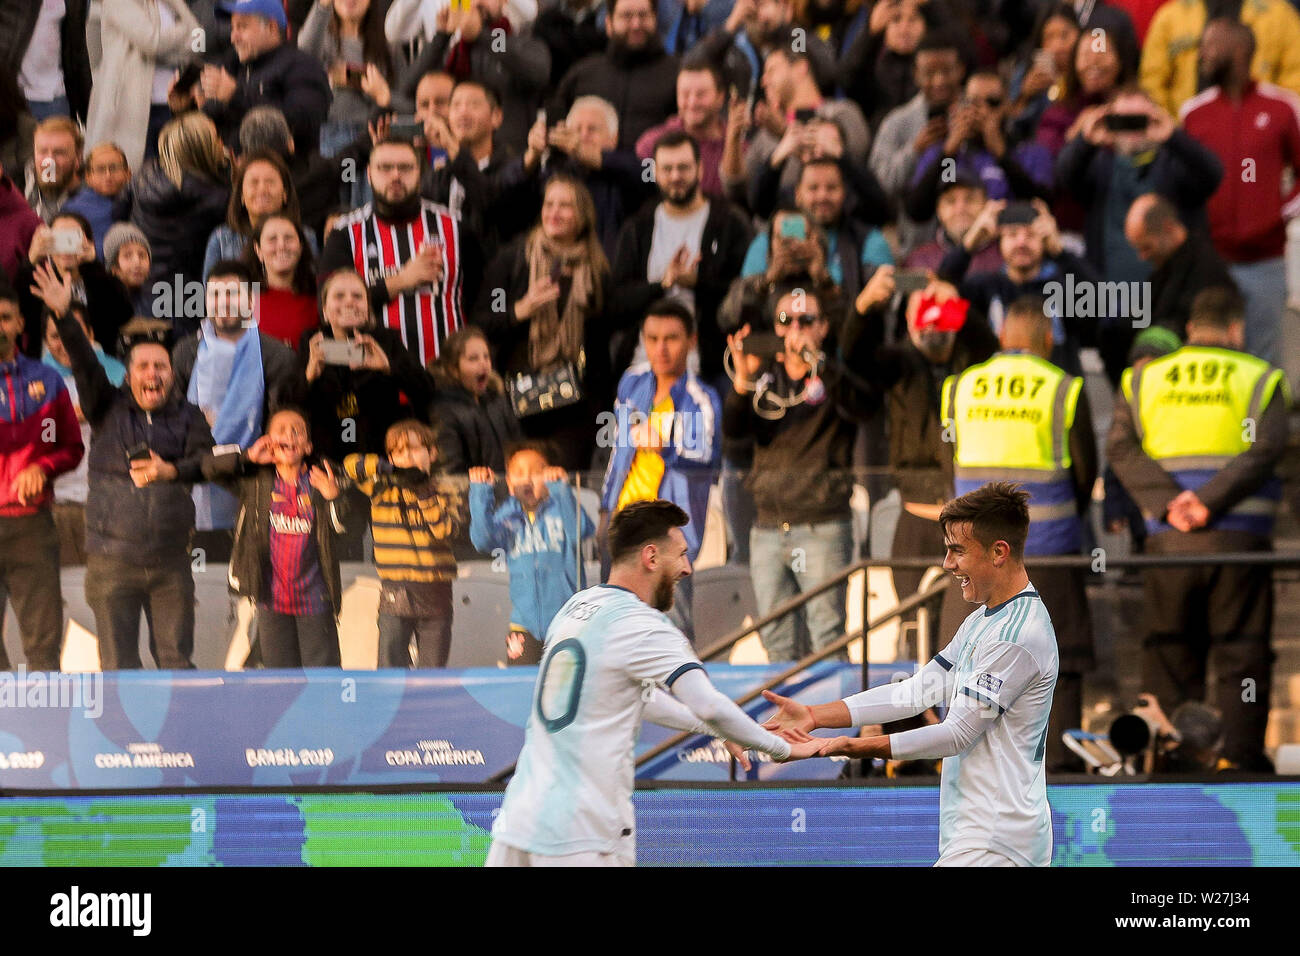 6th July 2019, Arena Corinthians Stadium, Sao Paulo, Brazil; Copa America international football, 3rd-4th playoff final, Argentina versus Chile; Paulo Dybala of Argentina celebrates his goal for 2-0 in minute 22 of the game with Lionel Messi 2-0 - Stock Image